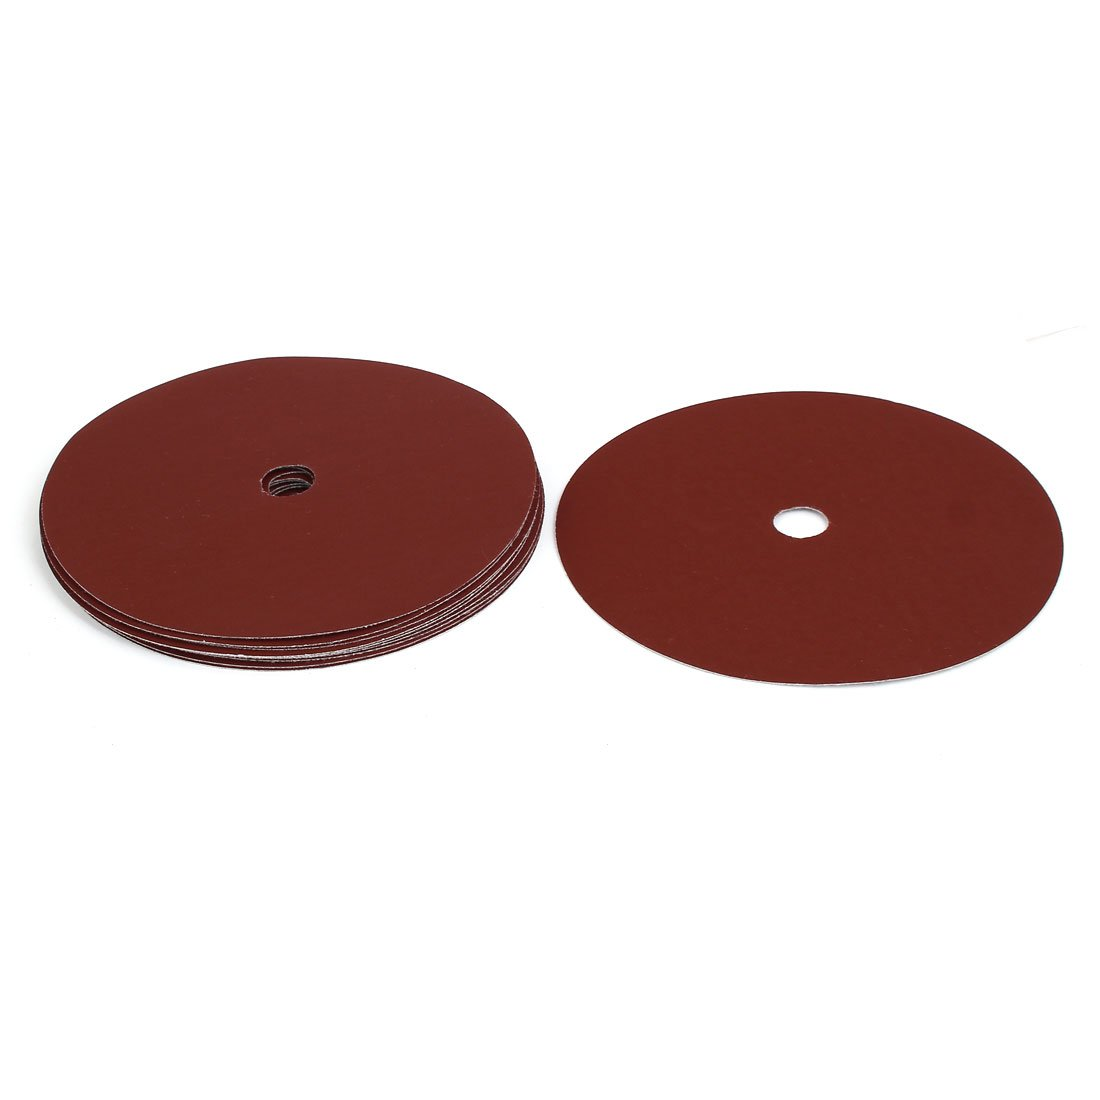 sourcingmap® 1000 Grit 1 Hole 7-inch Diameter Sandpaper Hook Loop Sanding Disc 10 Pcs a17032900ux1099